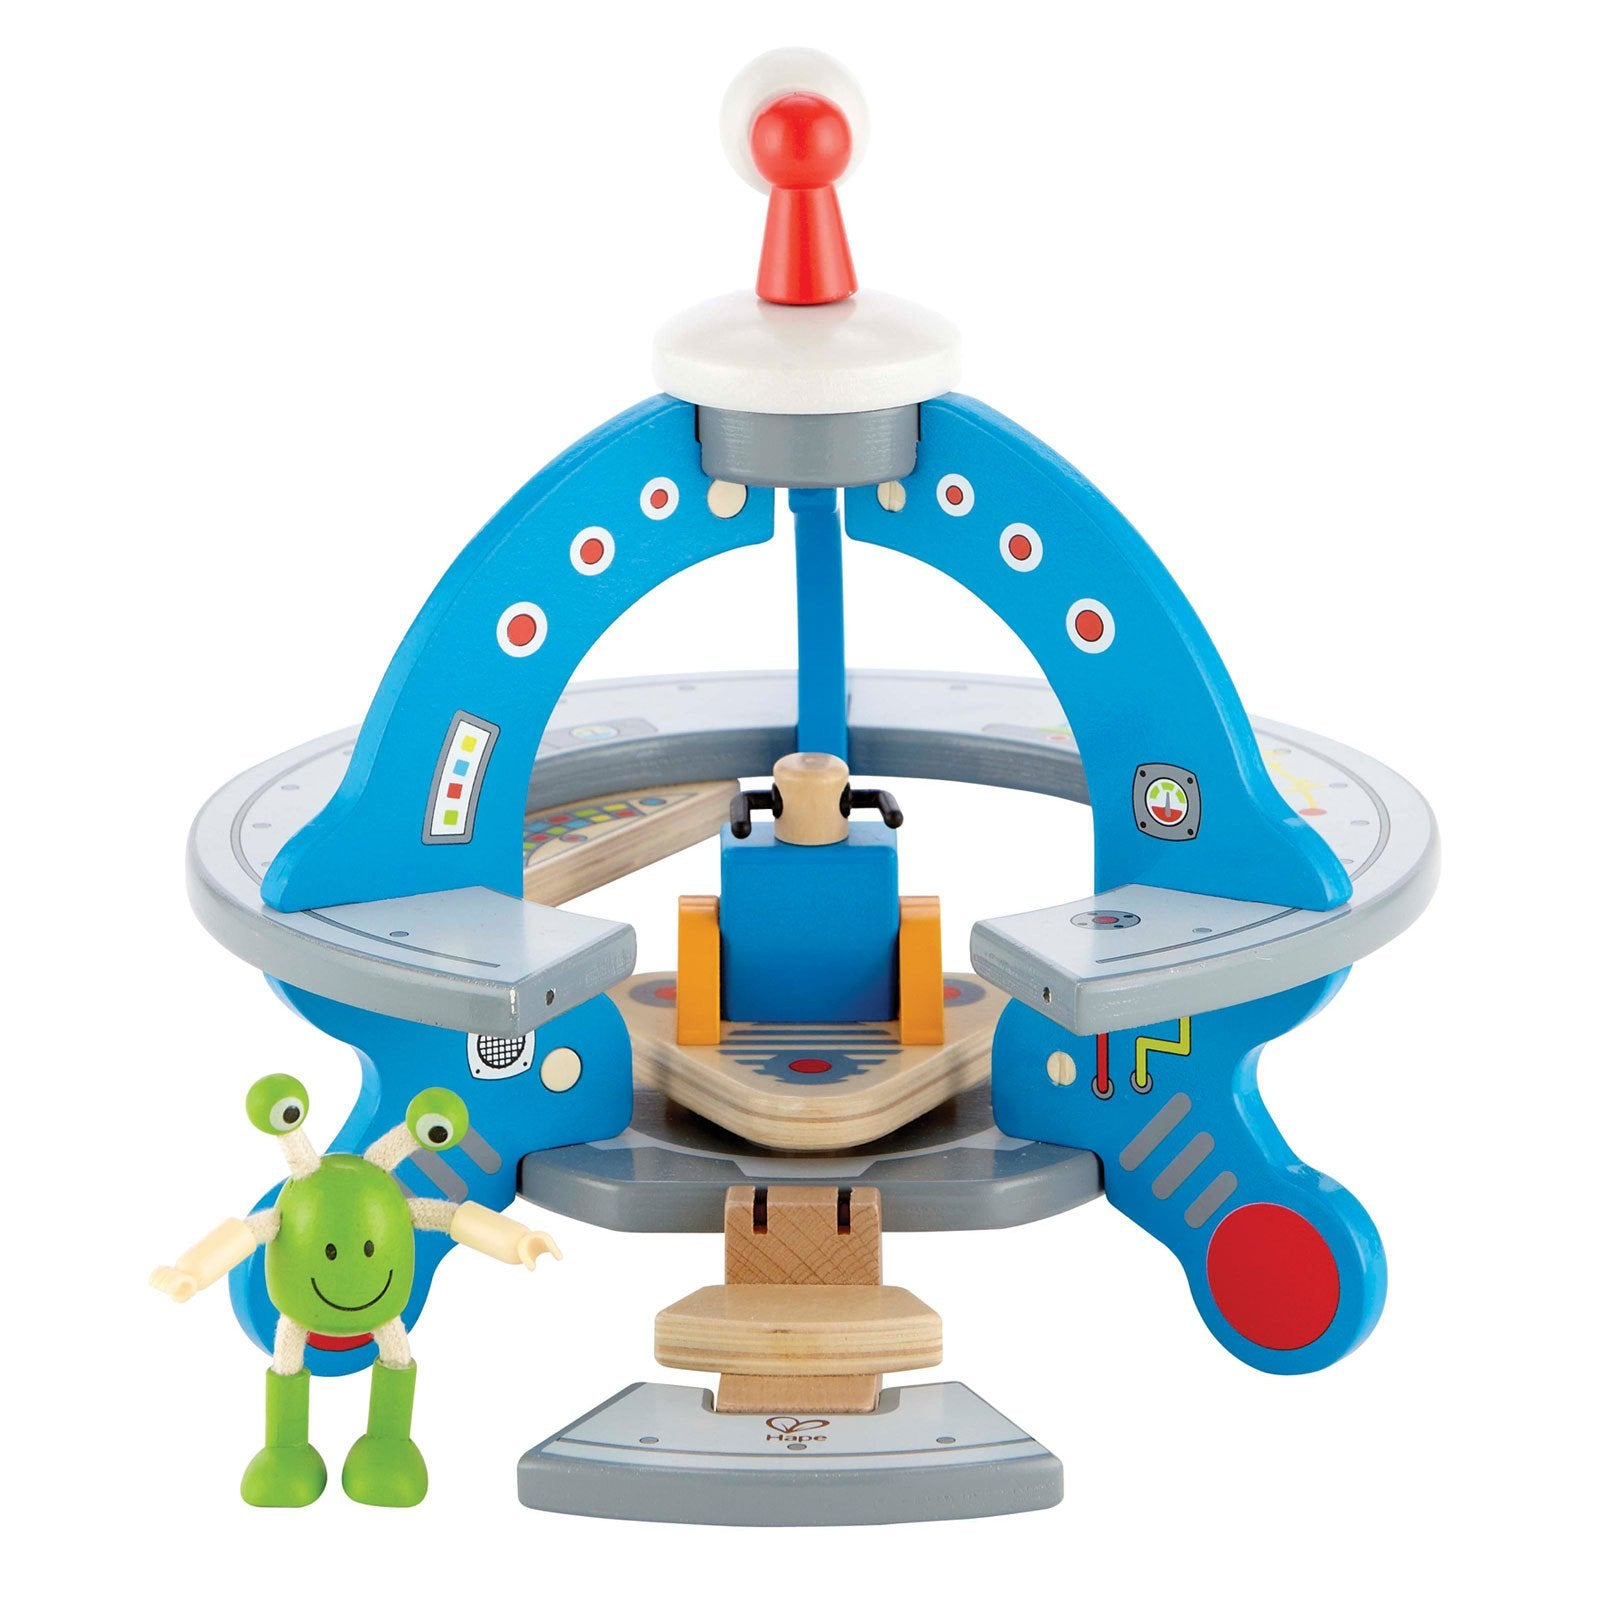 Hape UFO Hape Toys at Little Earth Nest Eco Shop